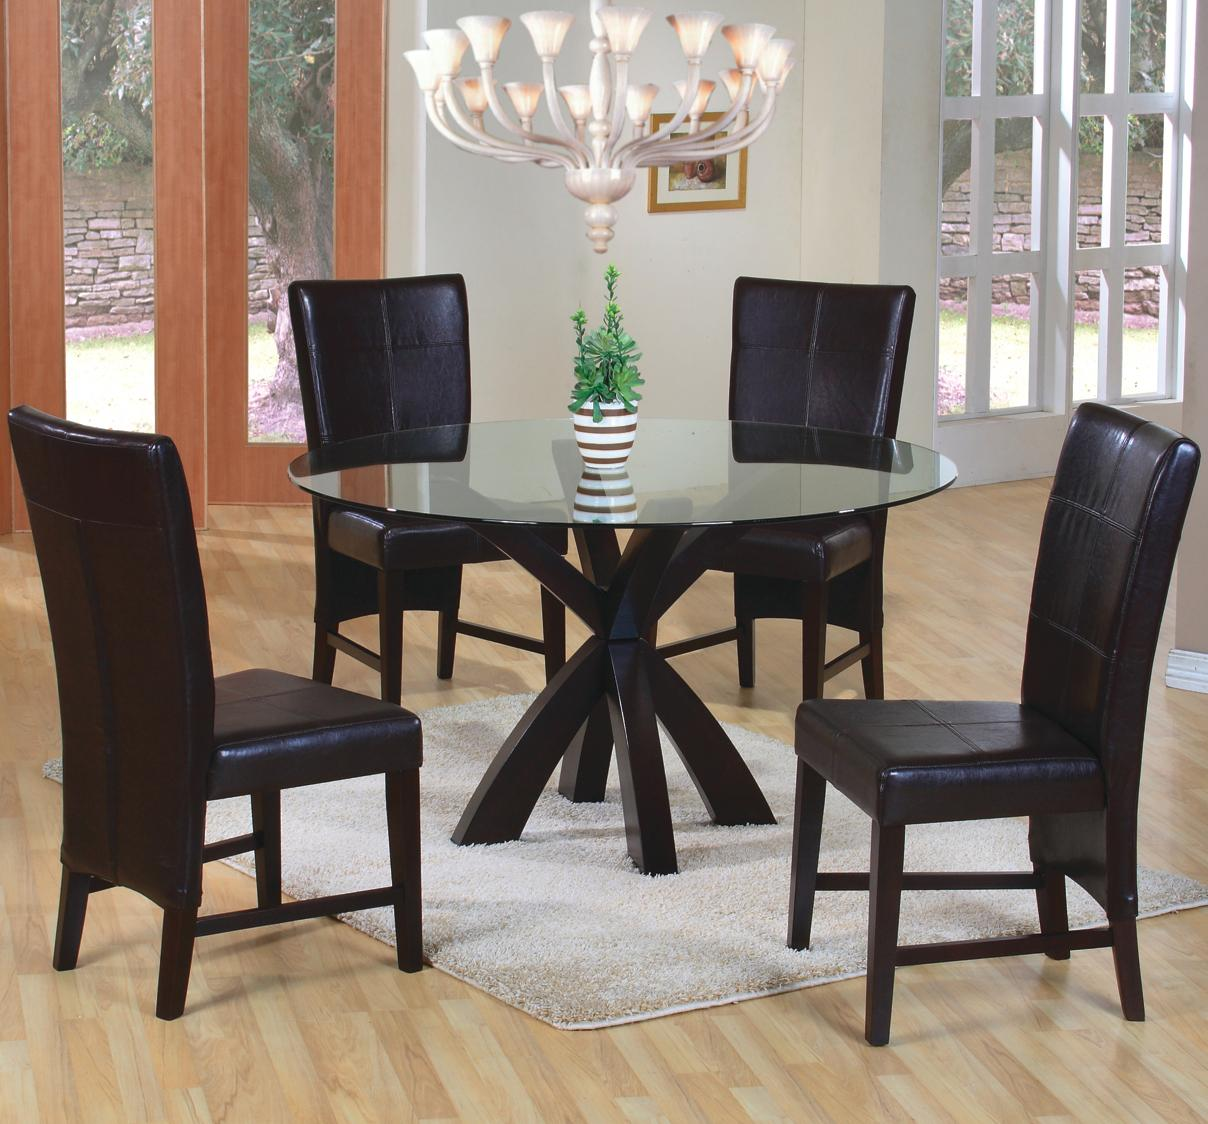 Coaster Carone Contemporary Glam Dining Room Set With: Coaster Shoemaker Crossing Pedestal Table Base With Round